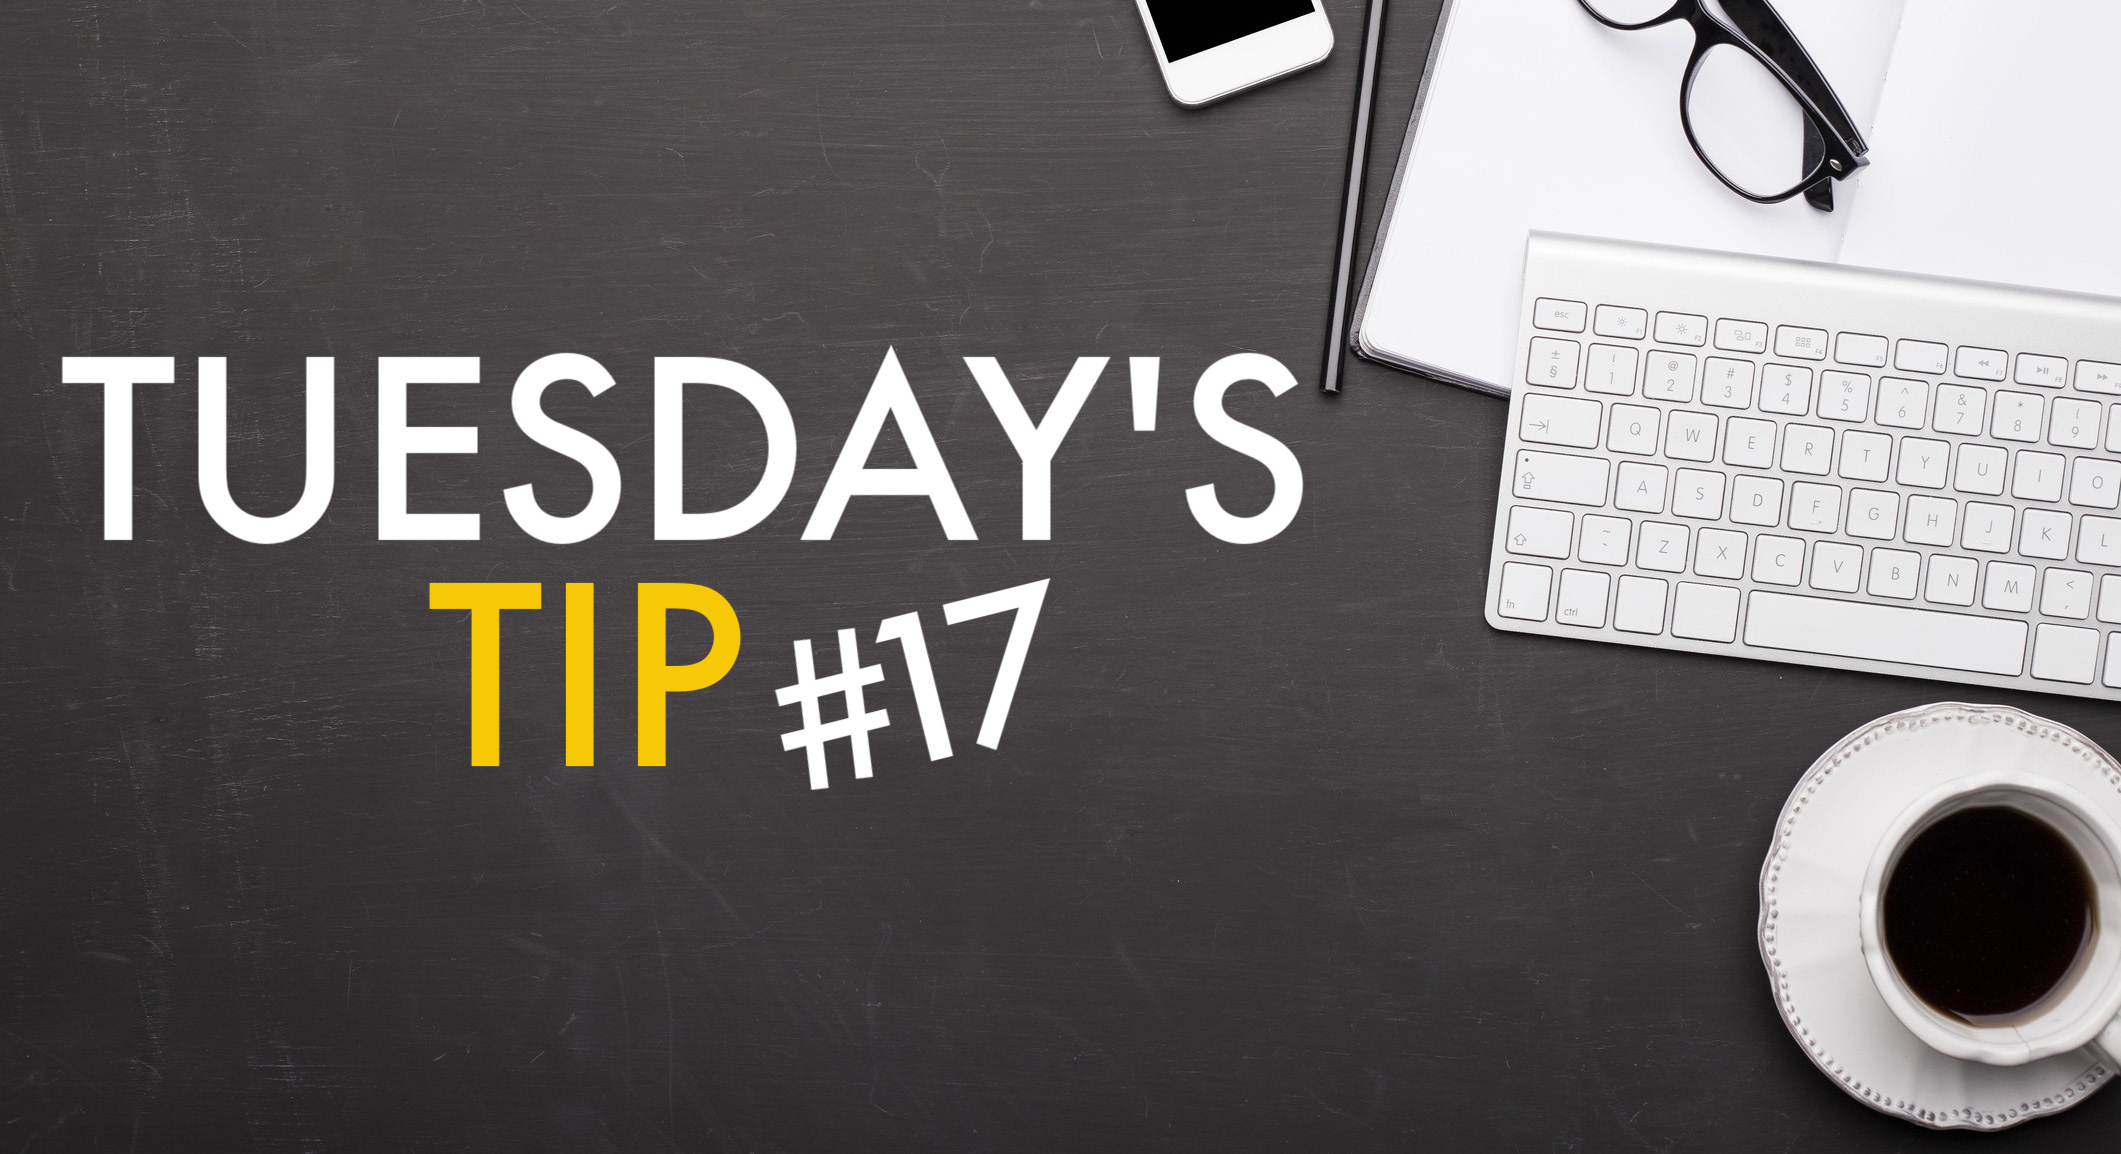 Tuesdays_Tip_17_2019-10-21